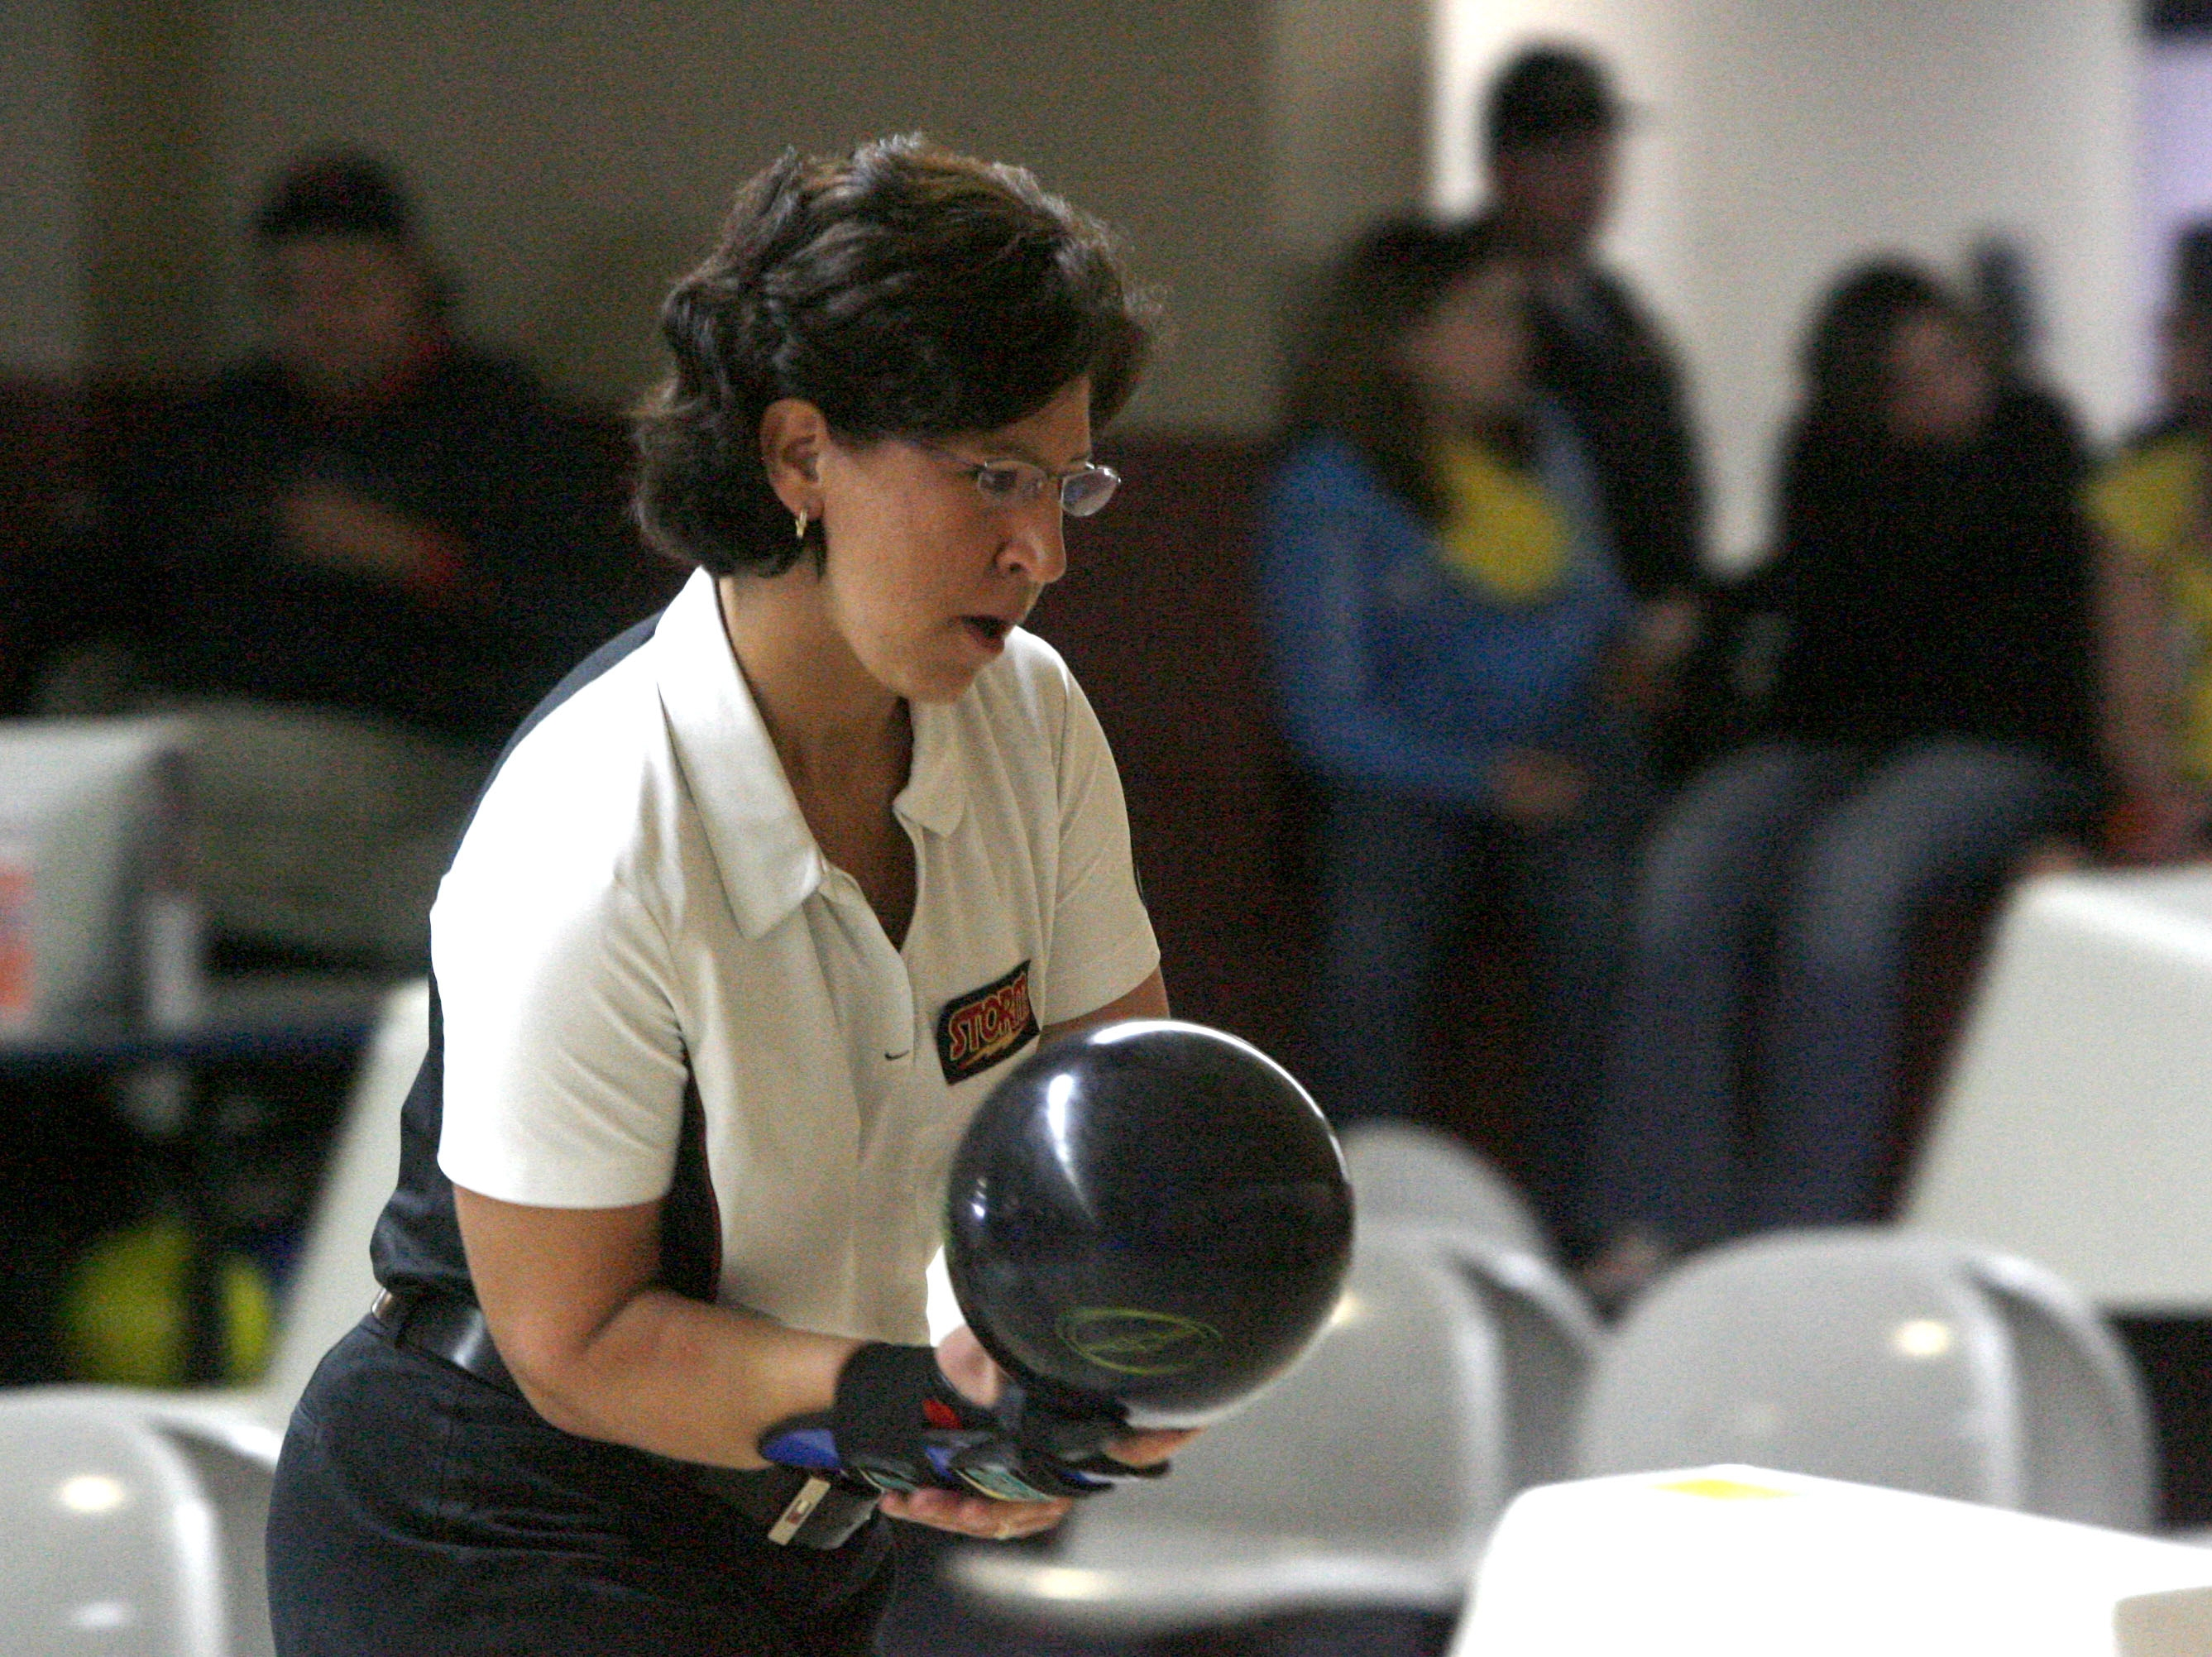 Milt Northrop's Bowling: Johnson takes new approach to her